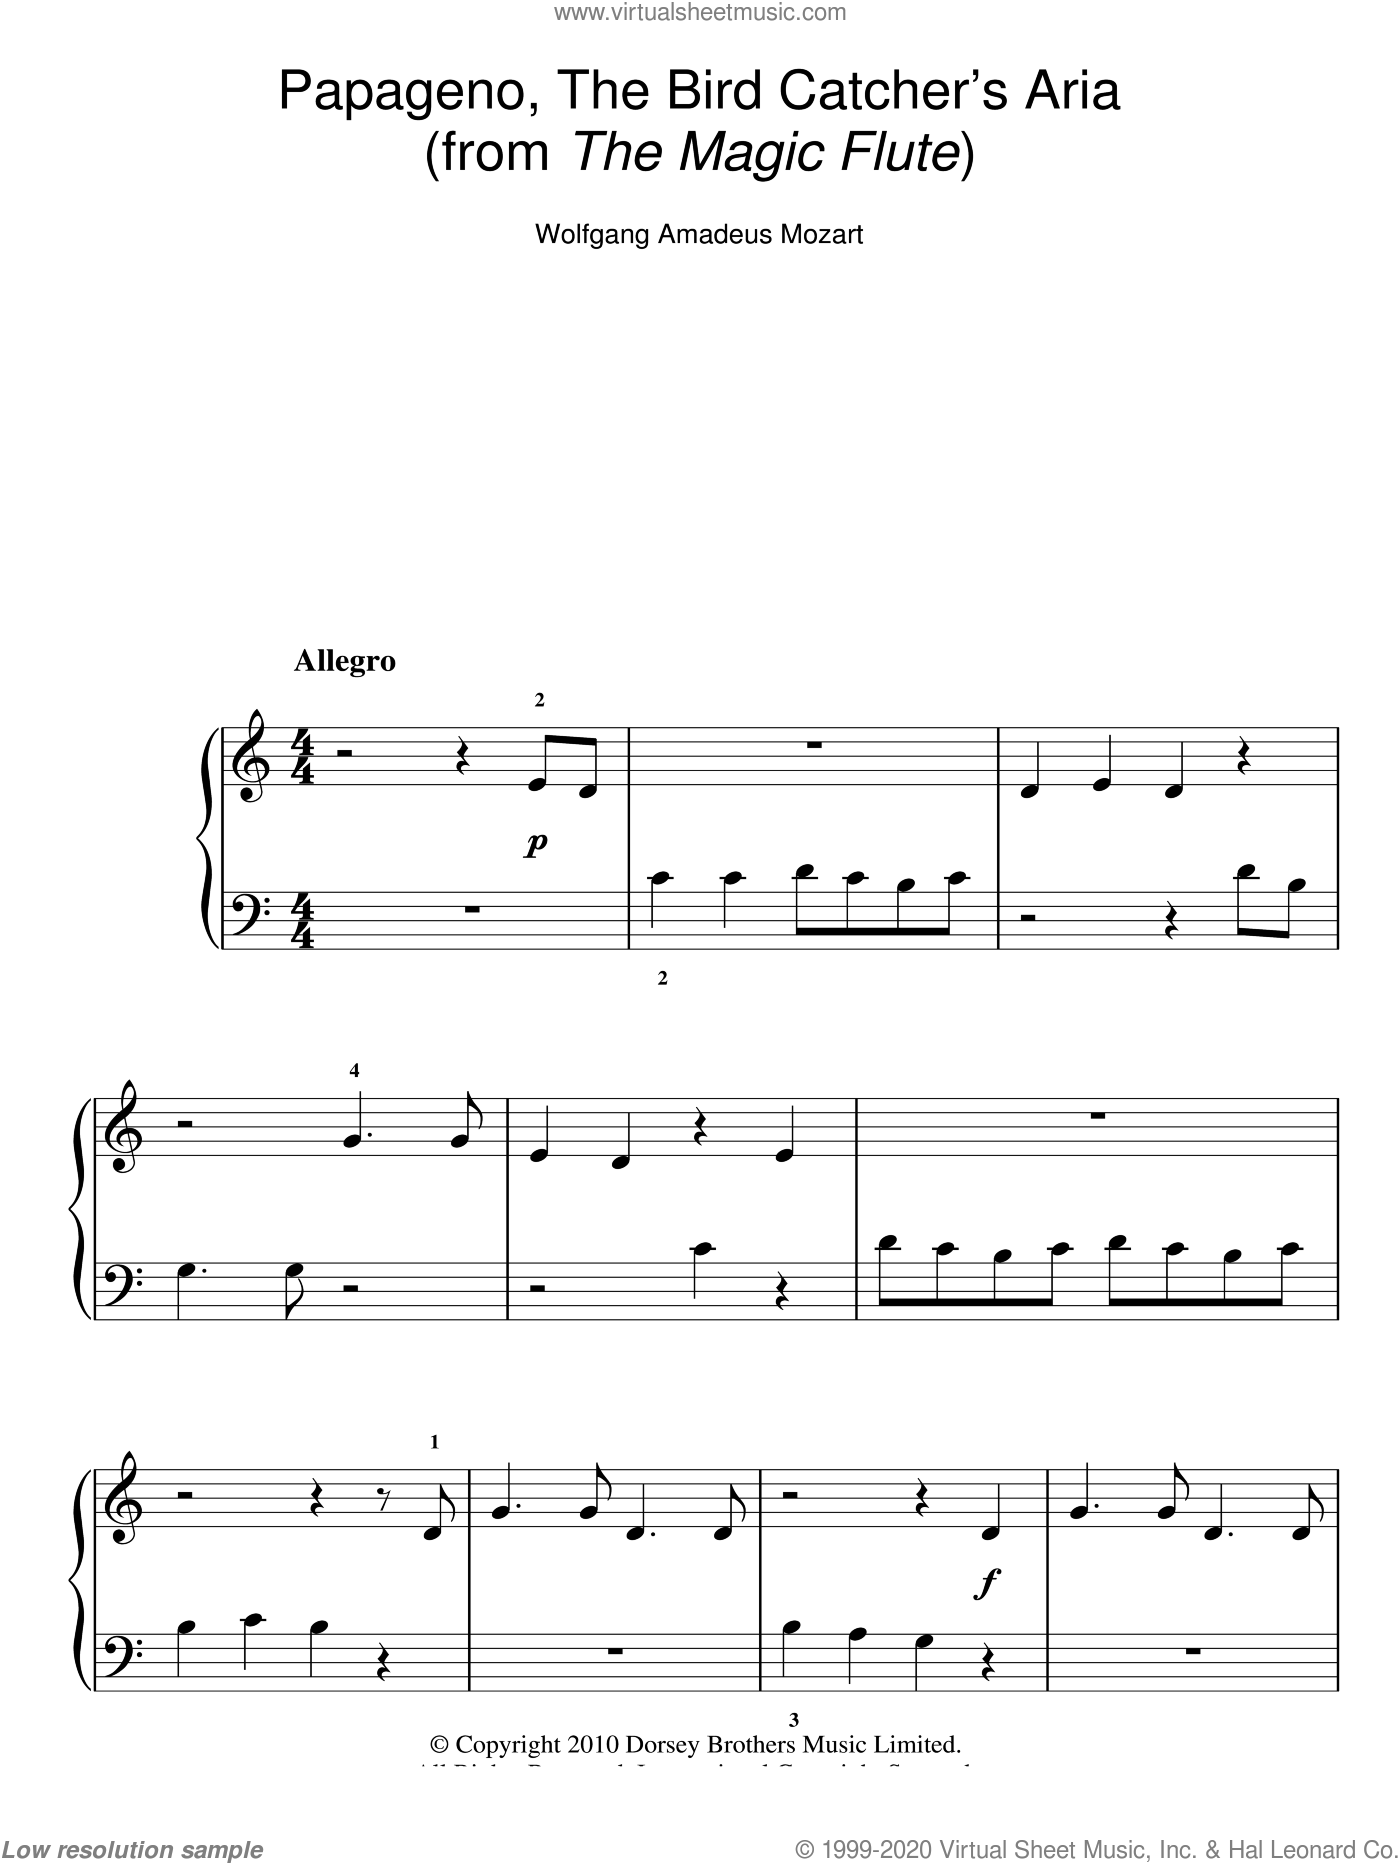 Papageno, The Bird Catcher's Aria (from The Magic Flute) sheet music for piano solo by Wolfgang Amadeus Mozart, classical score, easy skill level